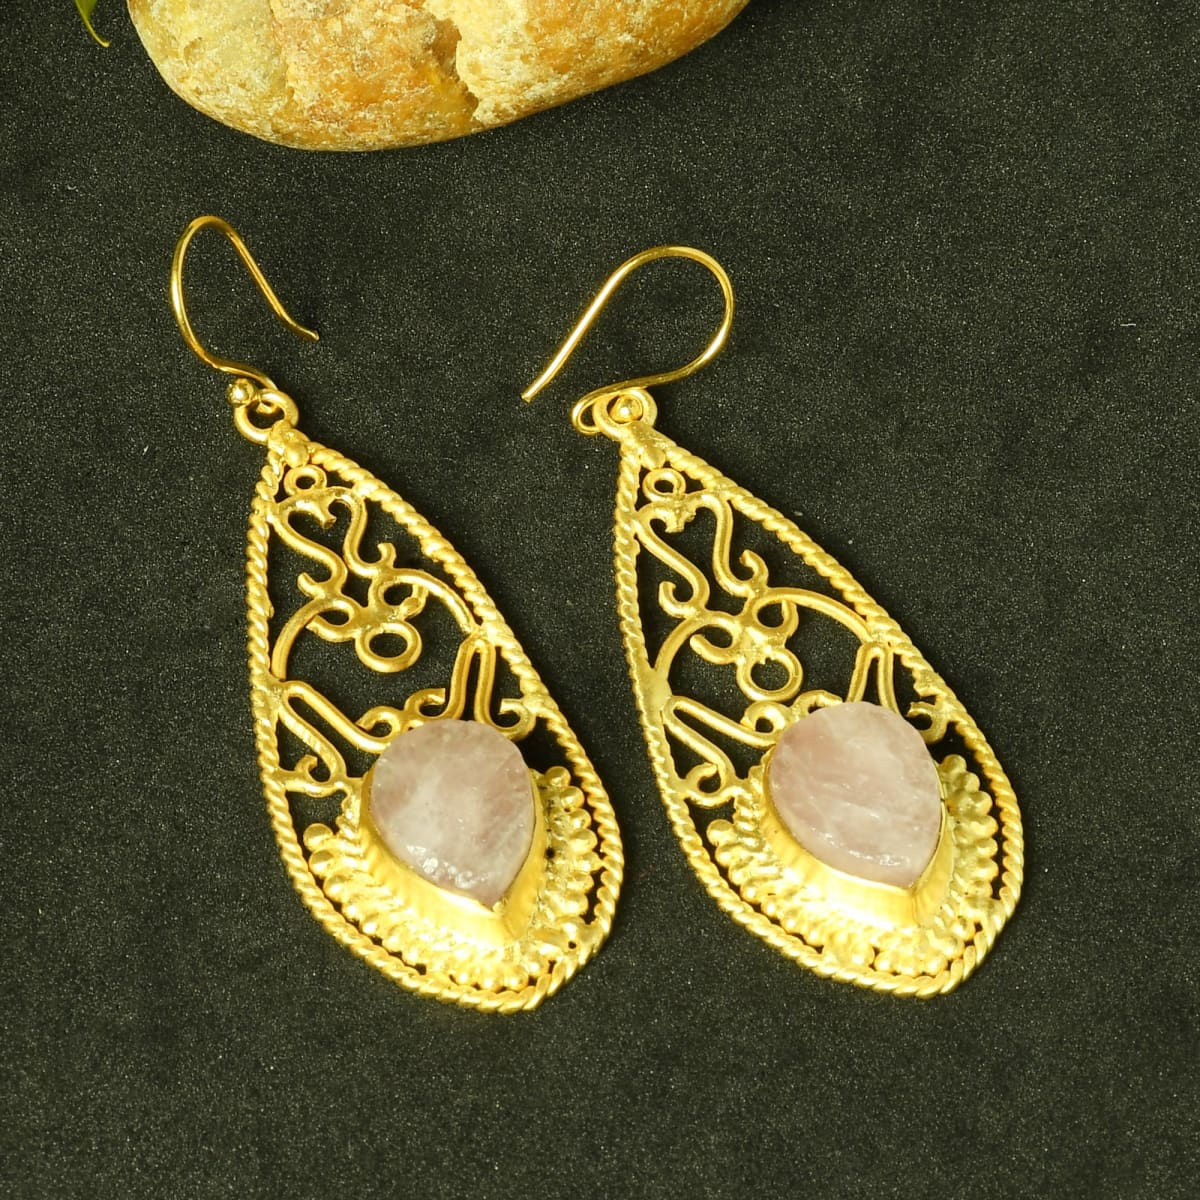 Handmade Wire Wrap Design Natural Rose Quartz Gemstone Dangle Earrings - by Bhagat Jewels